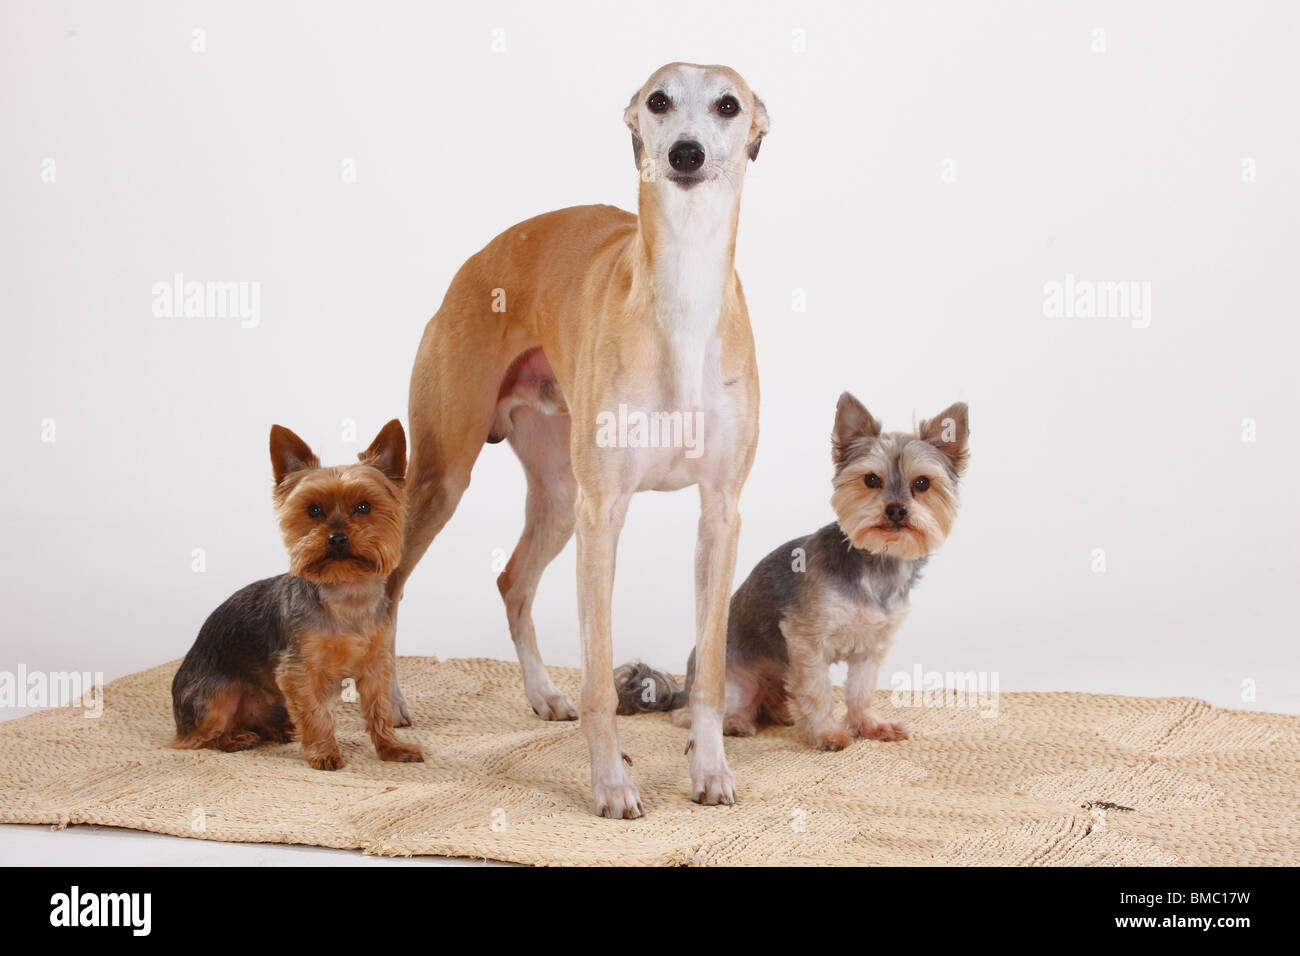 Whippet, Yorkshire Terrier and Mixed Breed Dog (Yorkshire Maltese crossbred) - Stock Image